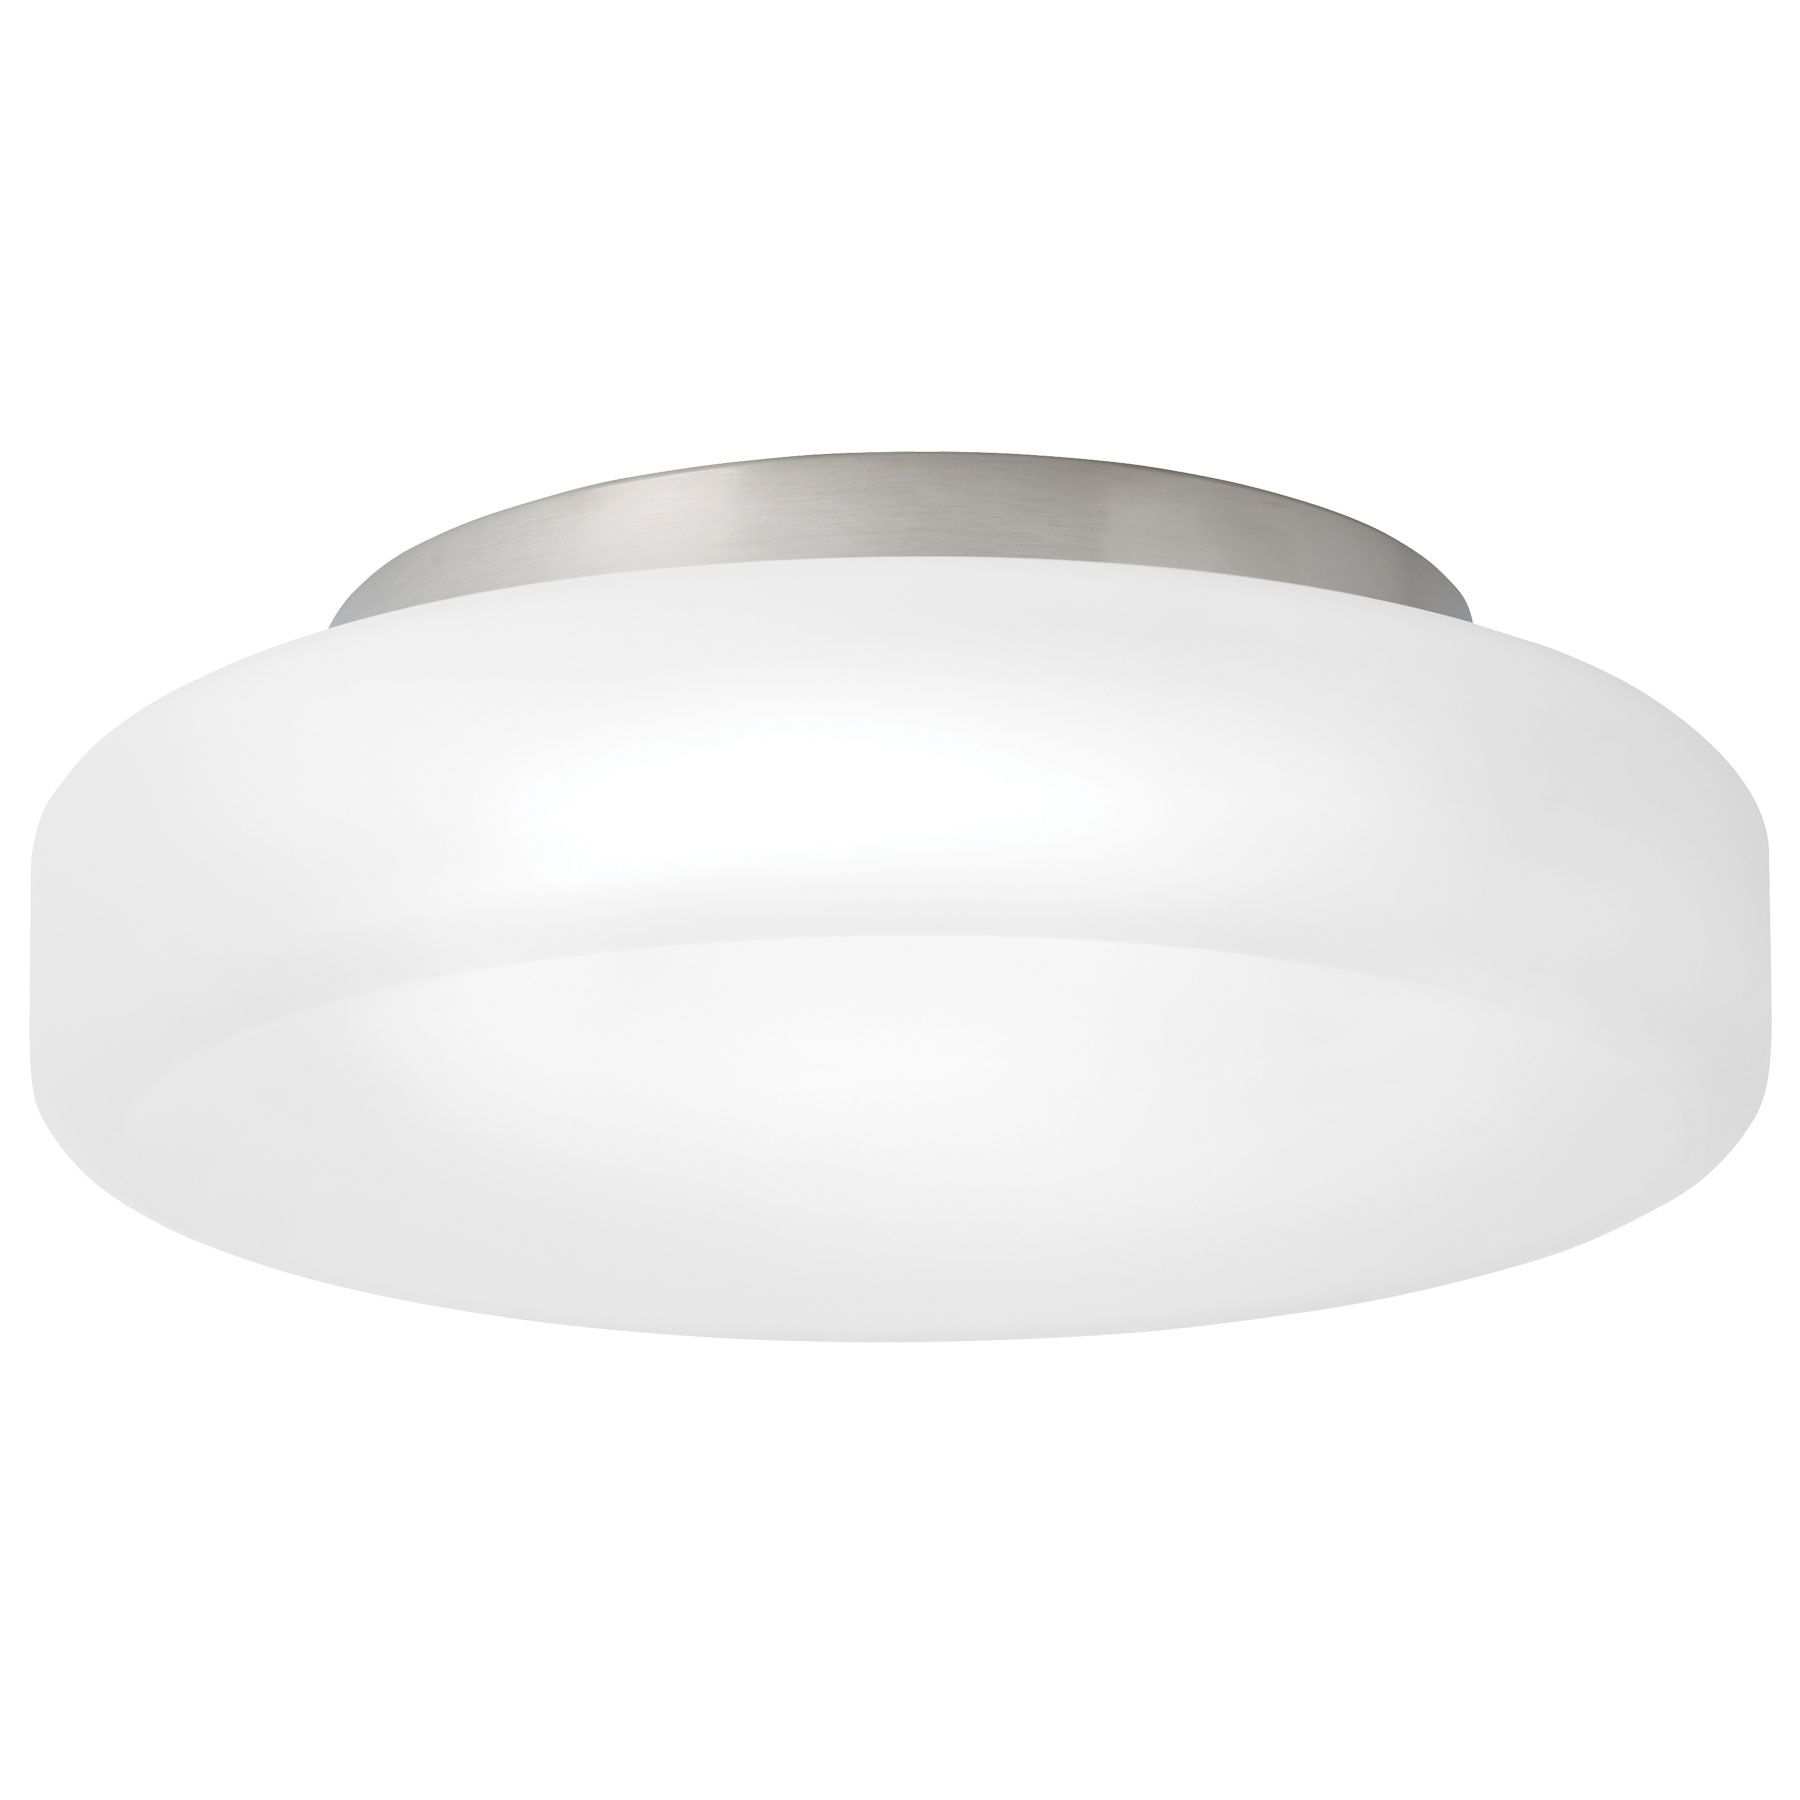 For The Hall Between Entrances And Kitchen Vessa Ceiling Flush Mount Lbl Lighting Flush Mount Ceiling Lights Led Ceiling Lights